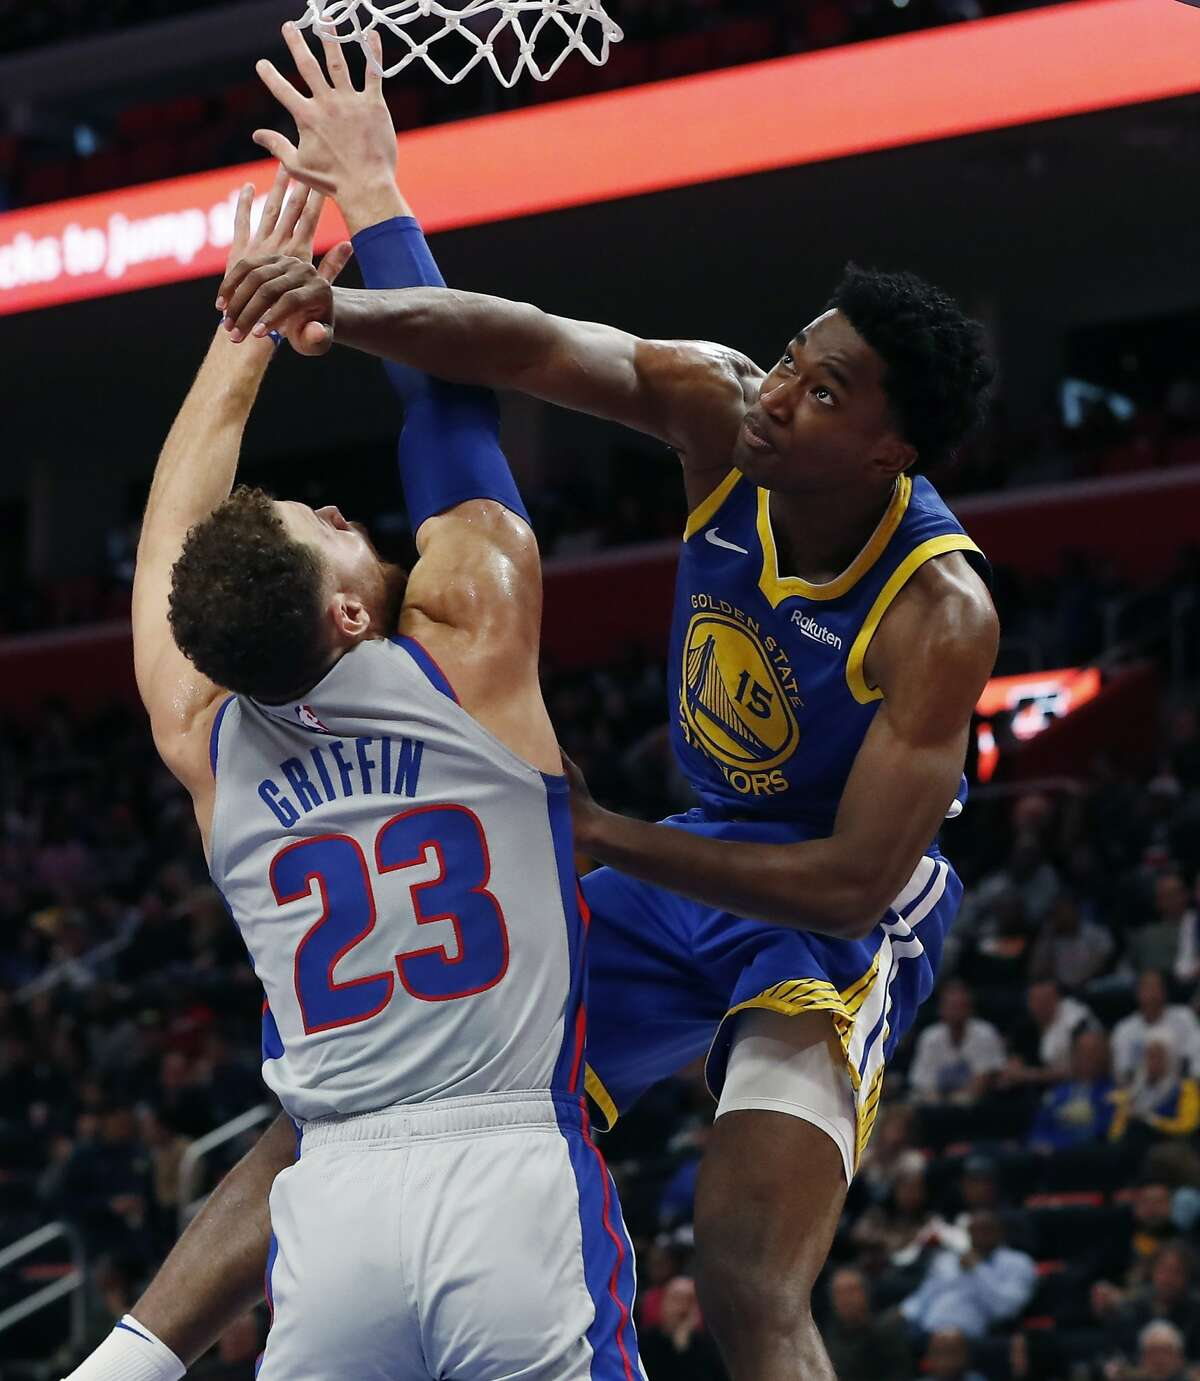 Golden State Warriors center Damian Jones (15) and Detroit Pistons forward Blake Griffin (23) fight for the rebound during the second half of an NBA basketball game, Saturday, Dec. 1, 2018, in Detroit. (AP Photo/Carlos Osorio)